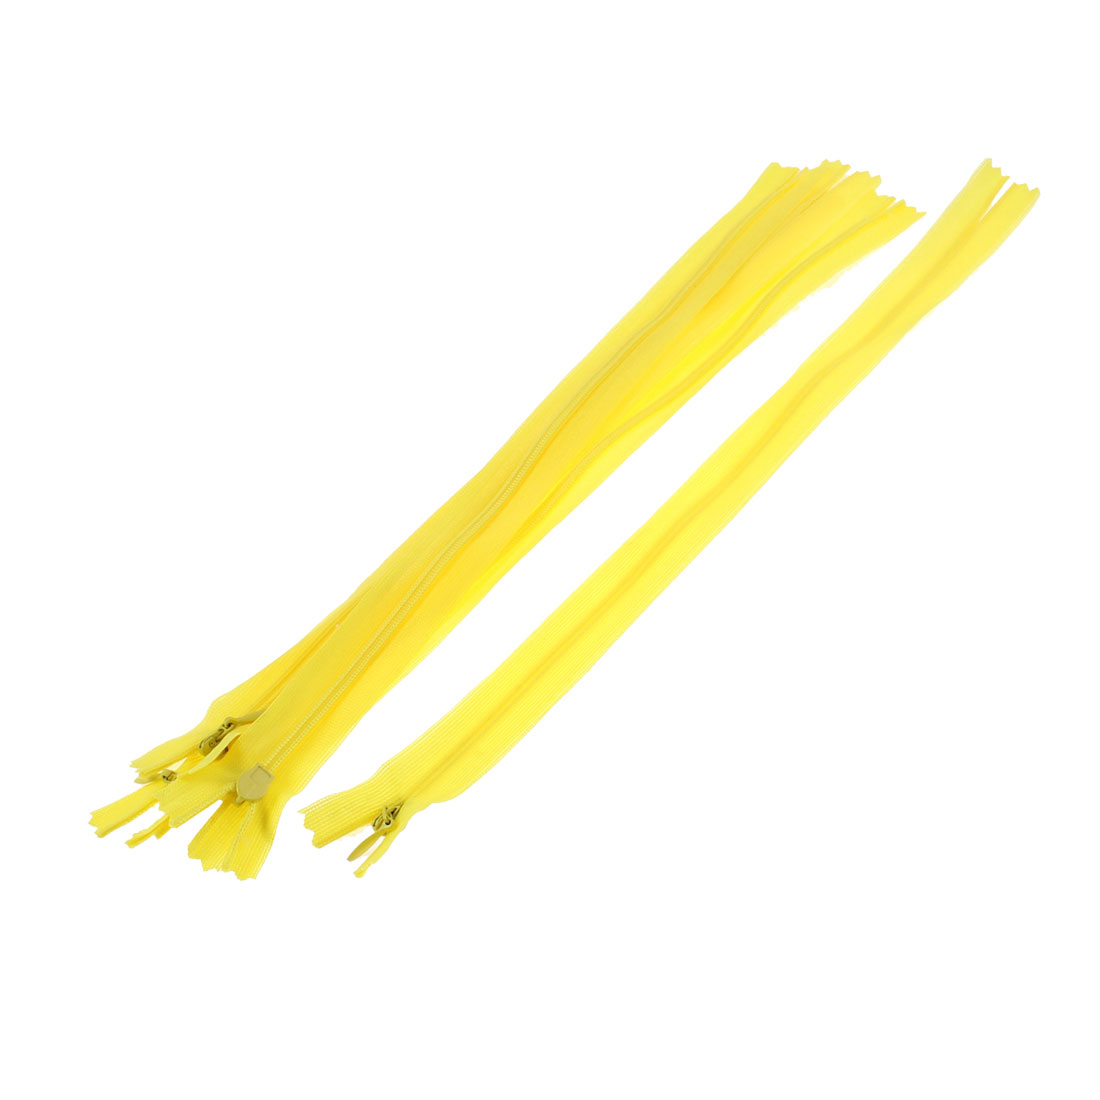 5 Pcs 12-inch Long Yellow Nylon Zippers Zips for Clothes